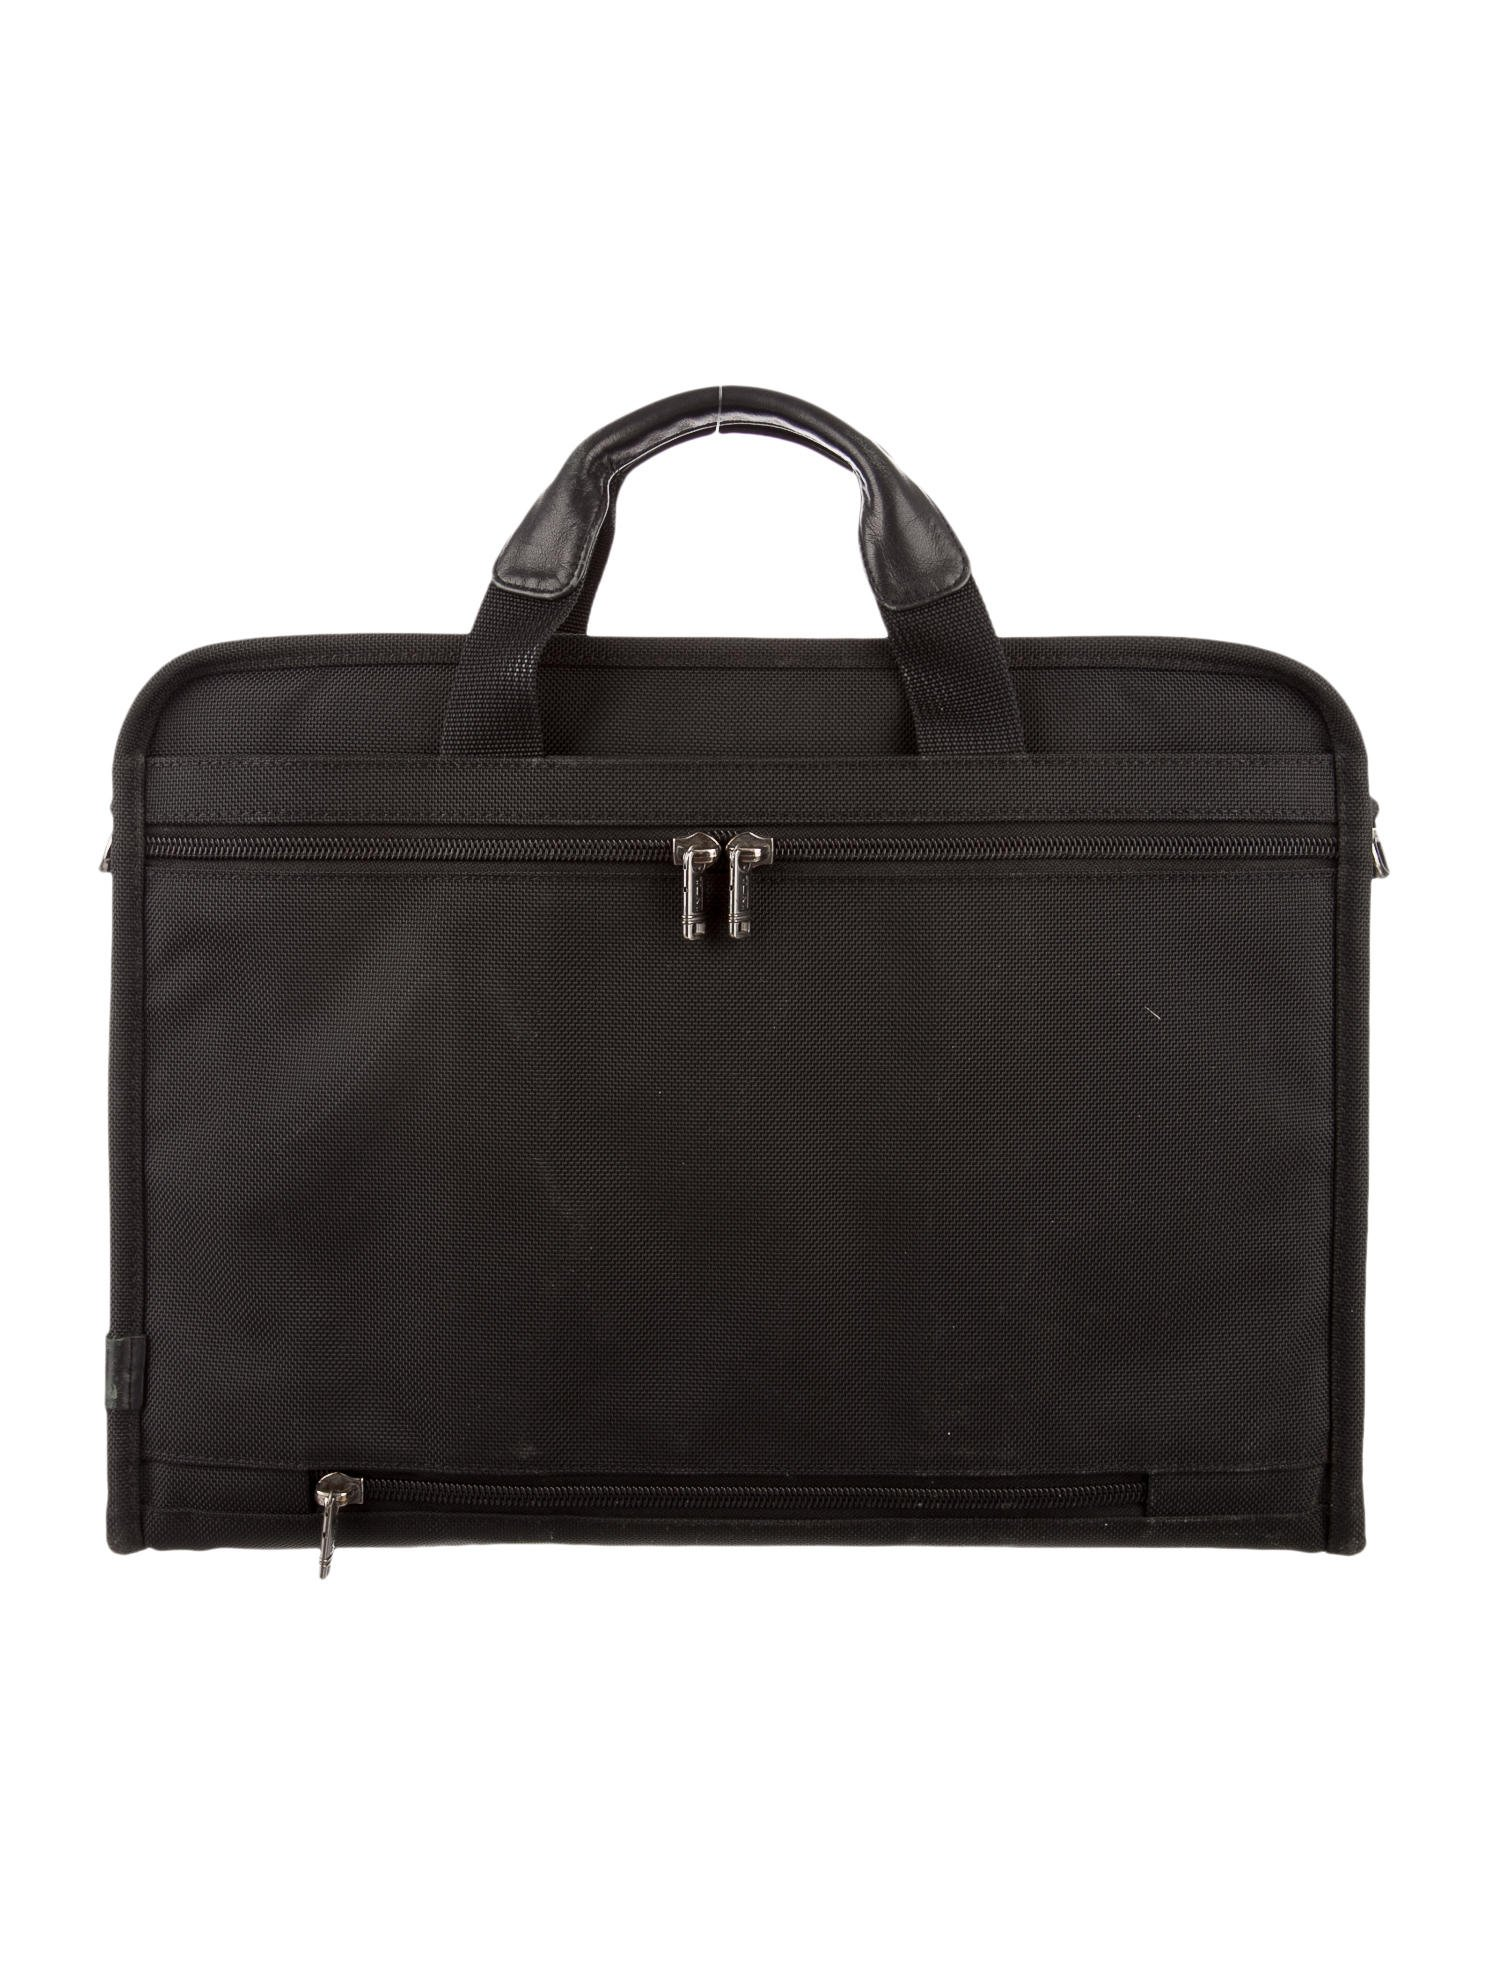 tumi mens briefcase photo - 1